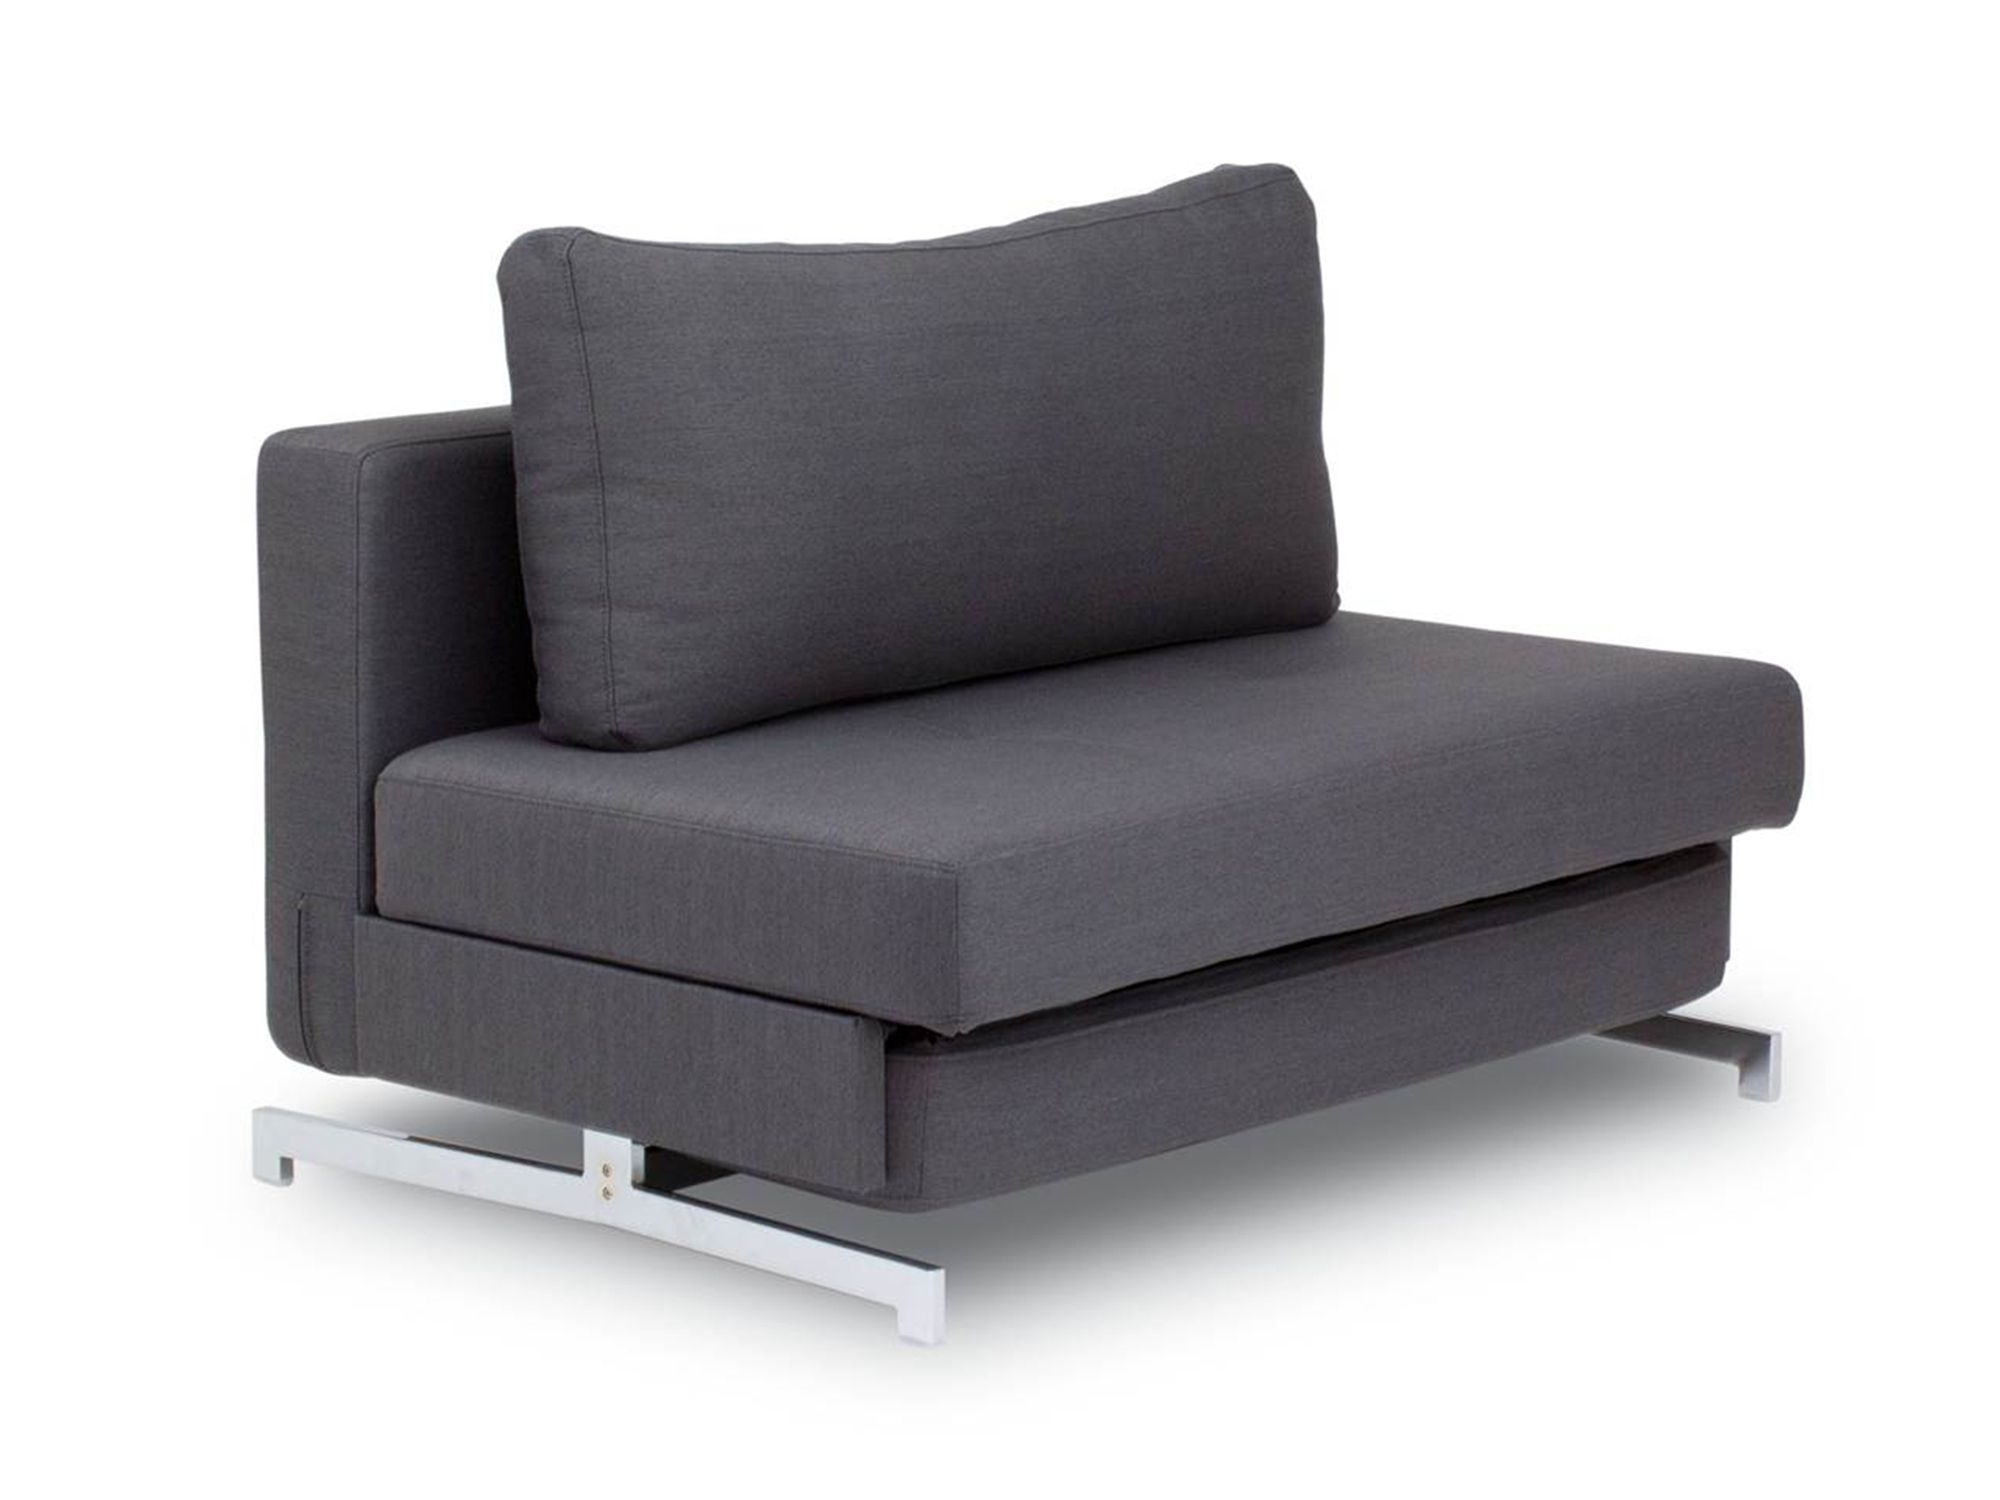 Best 25+ Single sofa bed chair ideas on Pinterest .  sc 1 st  Visual Hunt & Single Sofa Bed Chair - Visual Hunt